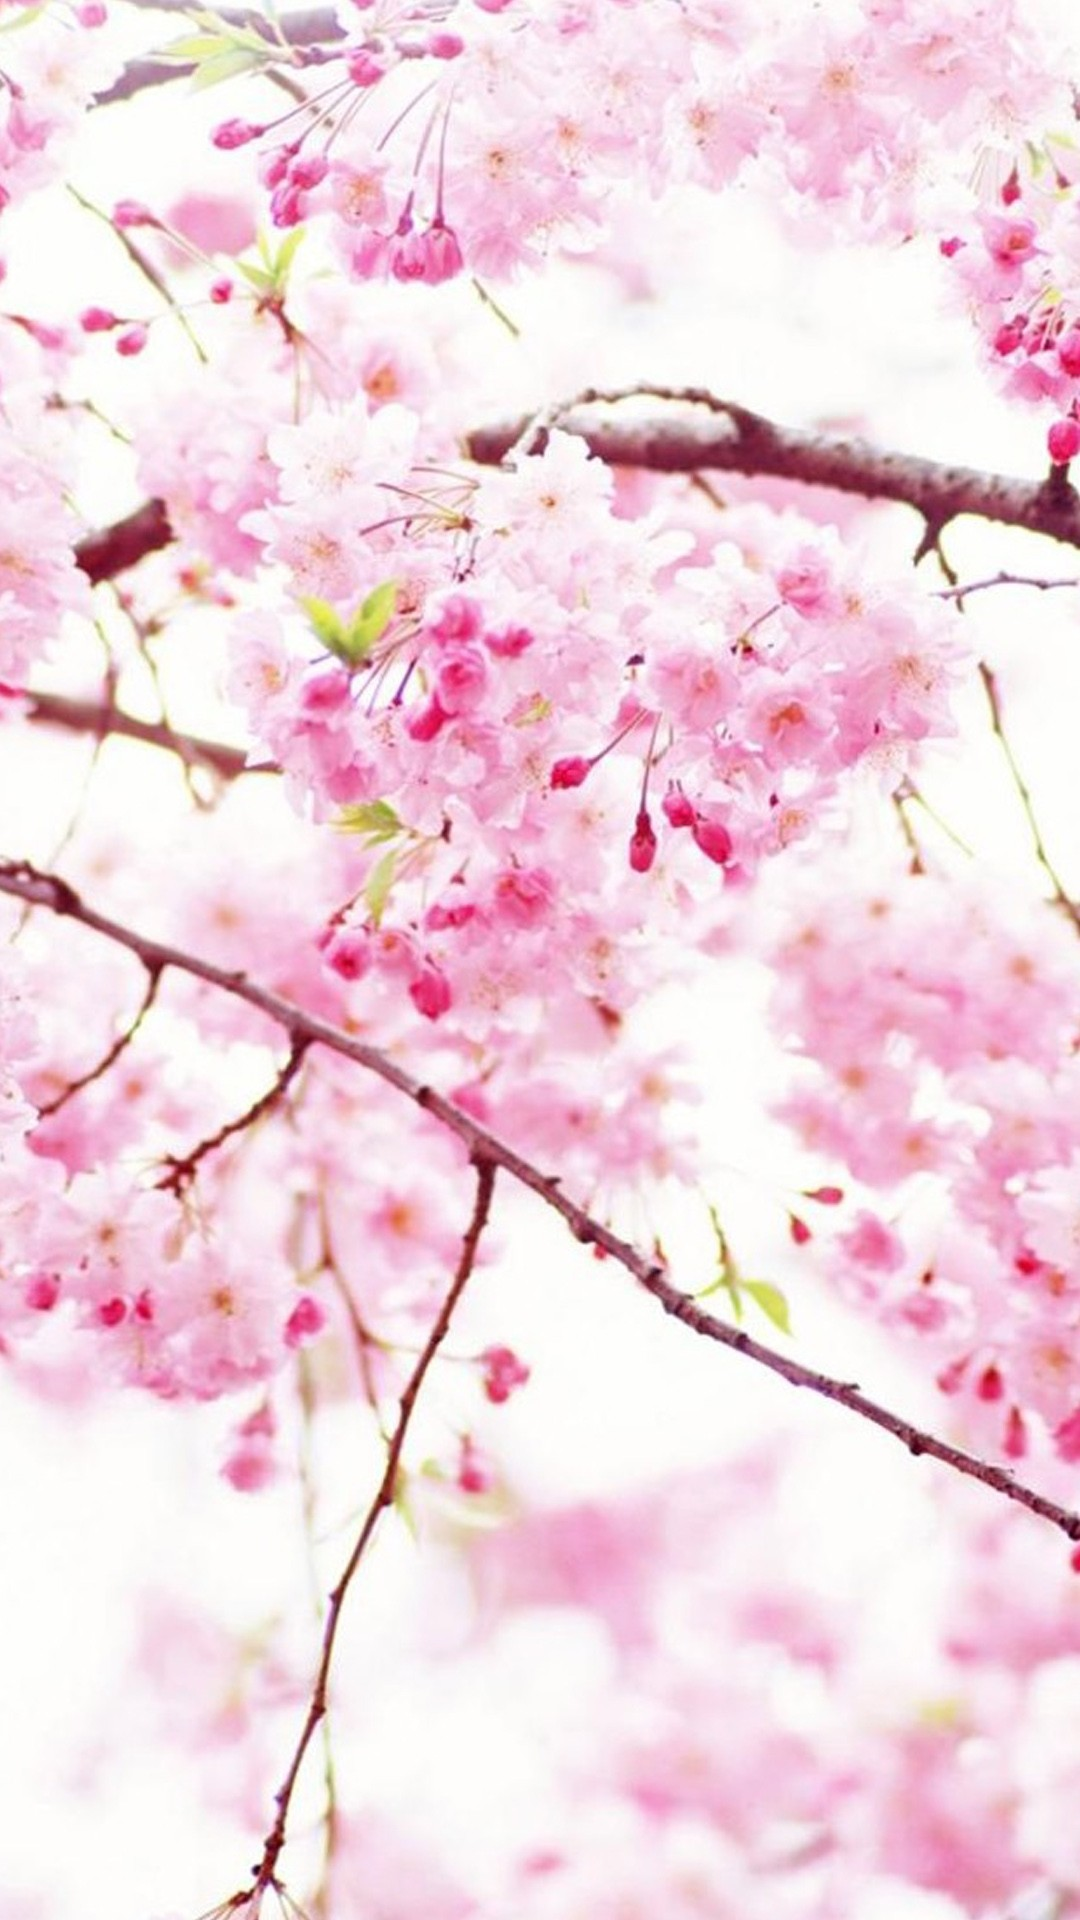 Cherry Blossom wallpaper for iphone